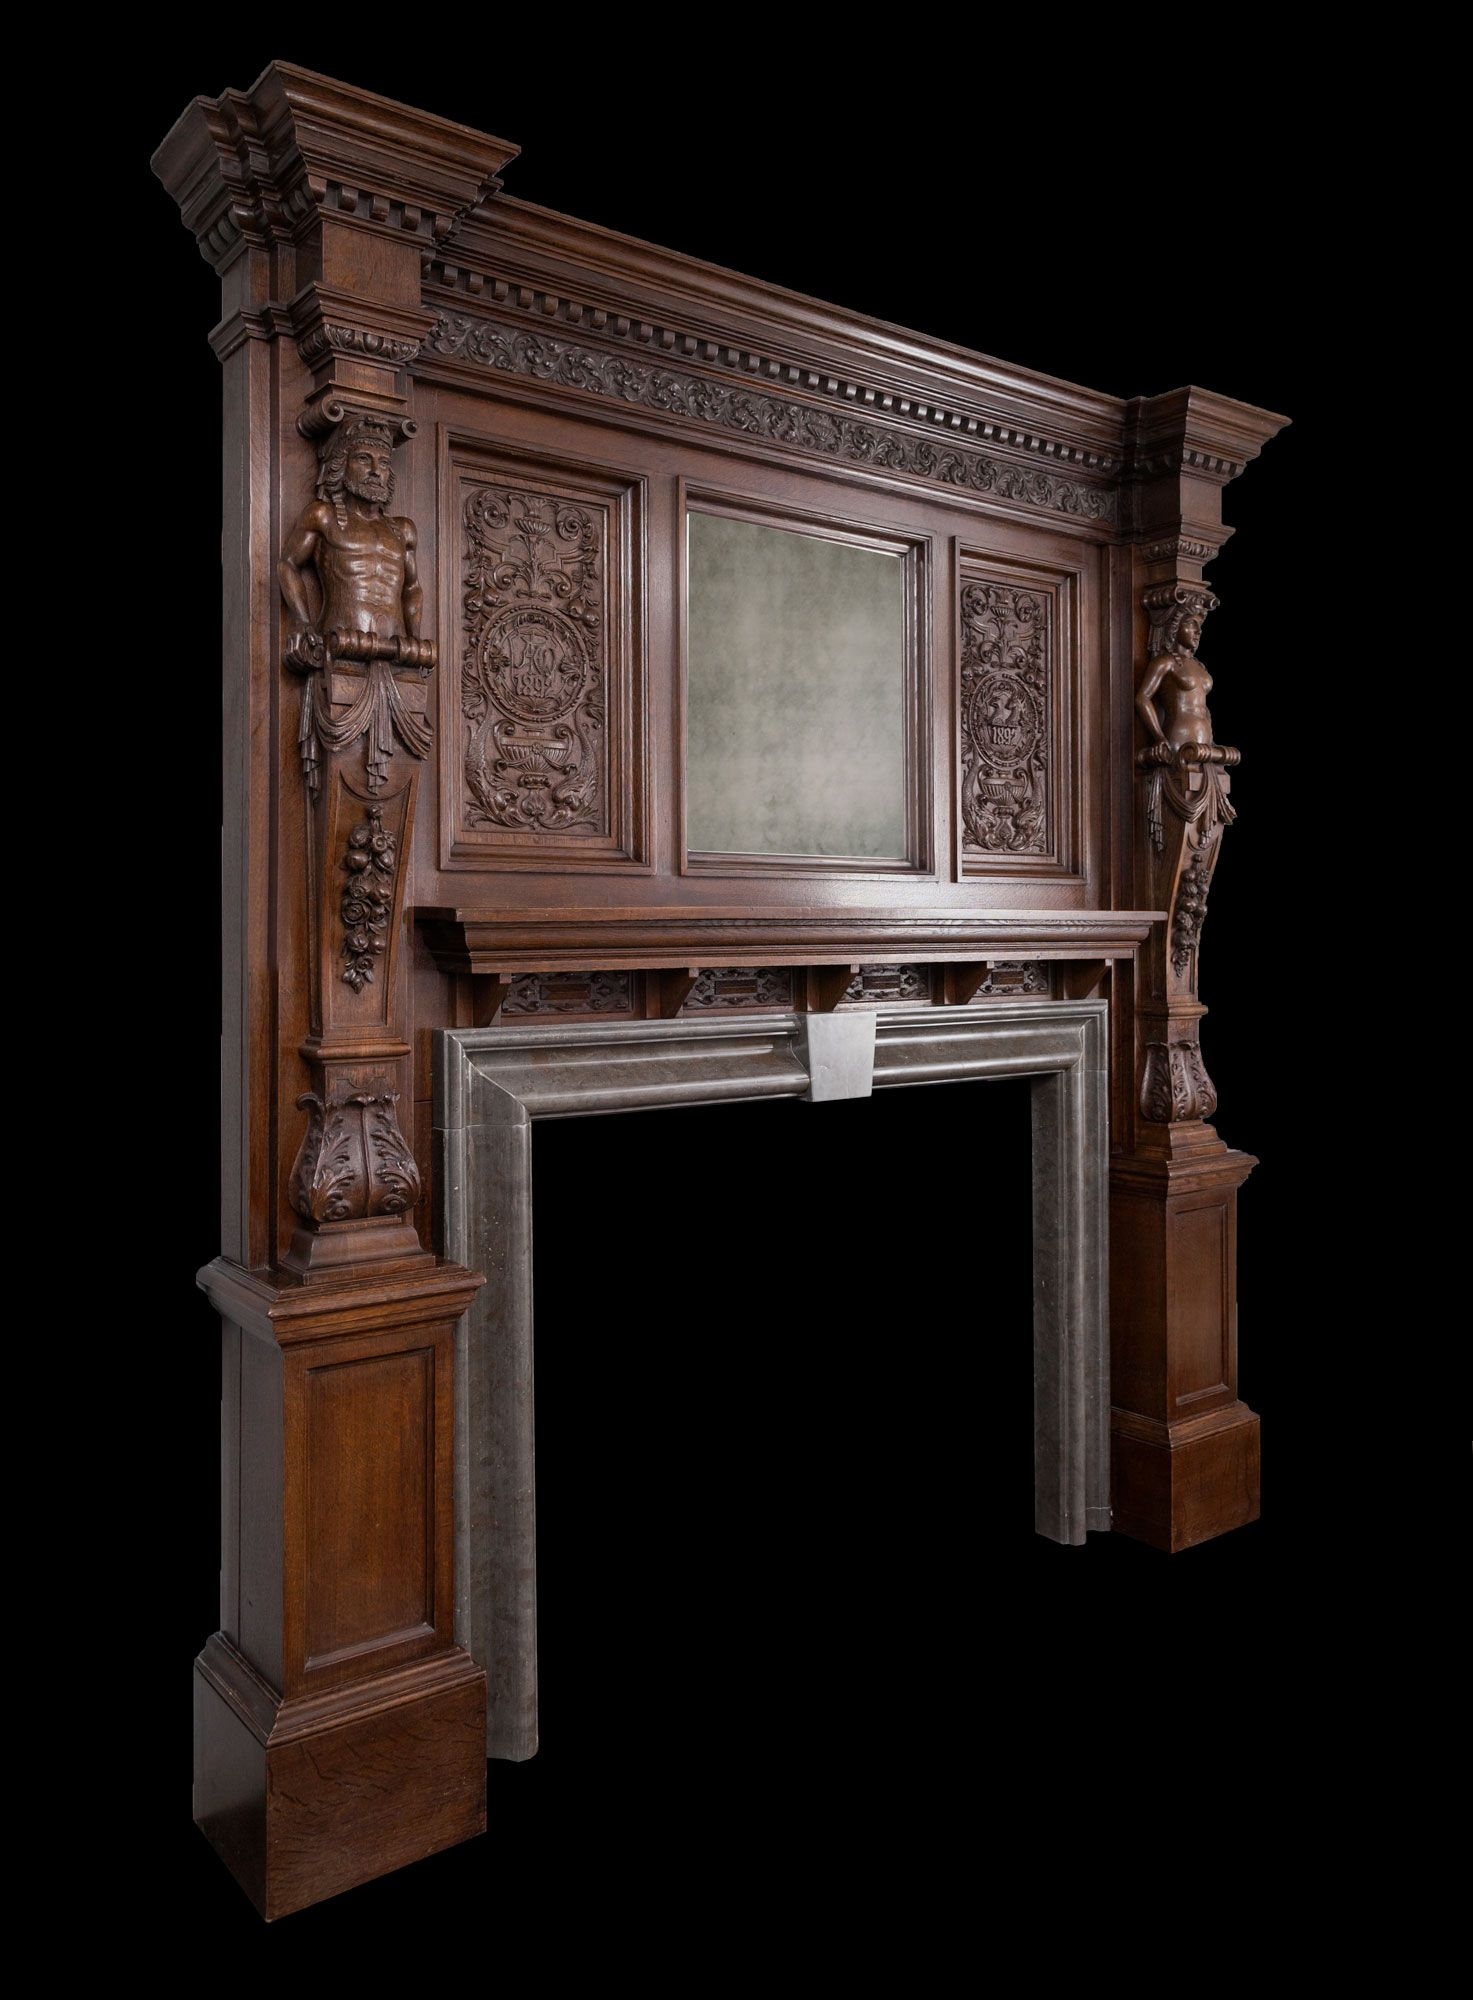 Phenomenal Wooden Mantel W105 From Ryan Smith Ltd Specialists In Interior Design Ideas Gentotryabchikinfo